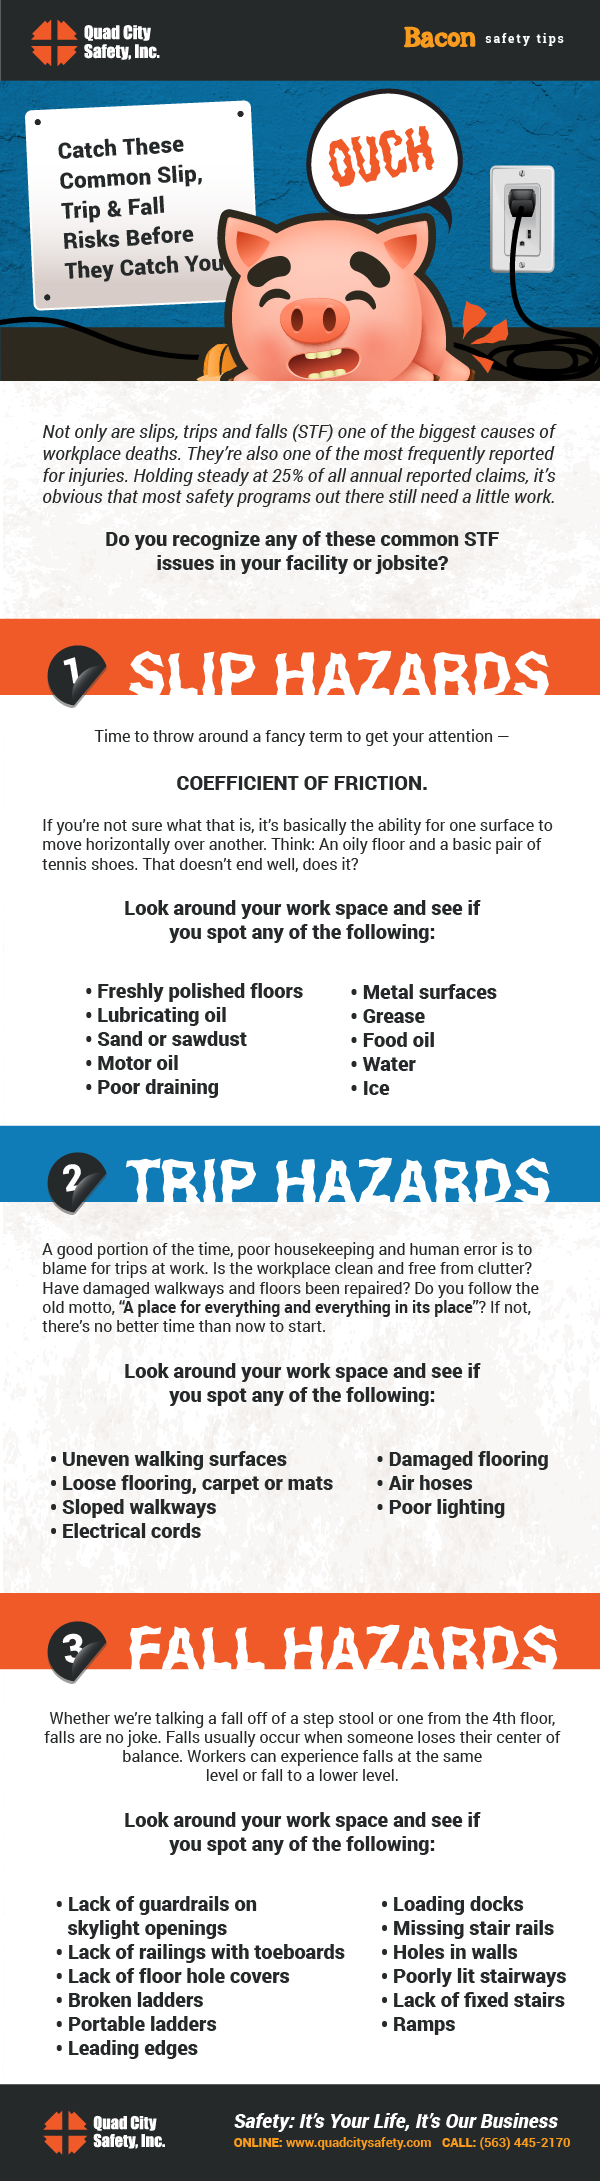 """Catch These Common Slip, Trip & Fall Risks Before They Catch You  Not only are slips, trips and falls (STF) one of the biggest causes of workplace deaths. They're also one of the most frequently reported for injuries. Holding steady at 25% of all annual reported claims, it's obvious that most safety programs out there still need a little work.   Do you recognize any of these common STF issues in your facility or jobsite?   Slip Hazards  Time to throw around a fancy term to get your attention — Coefficient of Friction.   If you're not sure what that is, it's basically the ability for one surface to move horizontally over another. Think: An oily floor and a basic pair of tennis shoes. That doesn't end well, does it?  Look around your work space and see if you spot any of the following:    Freshly polished floors Lubricating oil Sand or sawdust Motor oil Poor draining Metal surfaces Grease Food oil Water Ice    Trip Hazards  A good portion of the time, poor housekeeping and human error is to blame for trips at work. Is the workplace clean and free from clutter? Have damaged walkways and floors been repaired? Do you follow the old motto, """"A place for everything and everything in its place""""? If not, there's no better time than now to start.   Look around your work space and see if you spot any of the following:    Uneven walking surfaces Loose flooring, carpet or mats Sloped walkways Electrical cords Damaged flooring Air hoses  Poor lighting    Fall Hazards  Whether we're talking a fall off of a step stool or one from the 4th floor, falls are no joke. Falls usually occur when someone loses their center of balance. Workers can experience falls at the same level or fall to a lower level.   Look around your work space and see if you spot any of the following:   Lack of guardrails on skylight openings Lack of railings with toeboards Lack of floor hole covers Broken ladders Portable ladders Leading edges Loading docks Missing stair rails  Holes in walls  Poorly lit stairways """